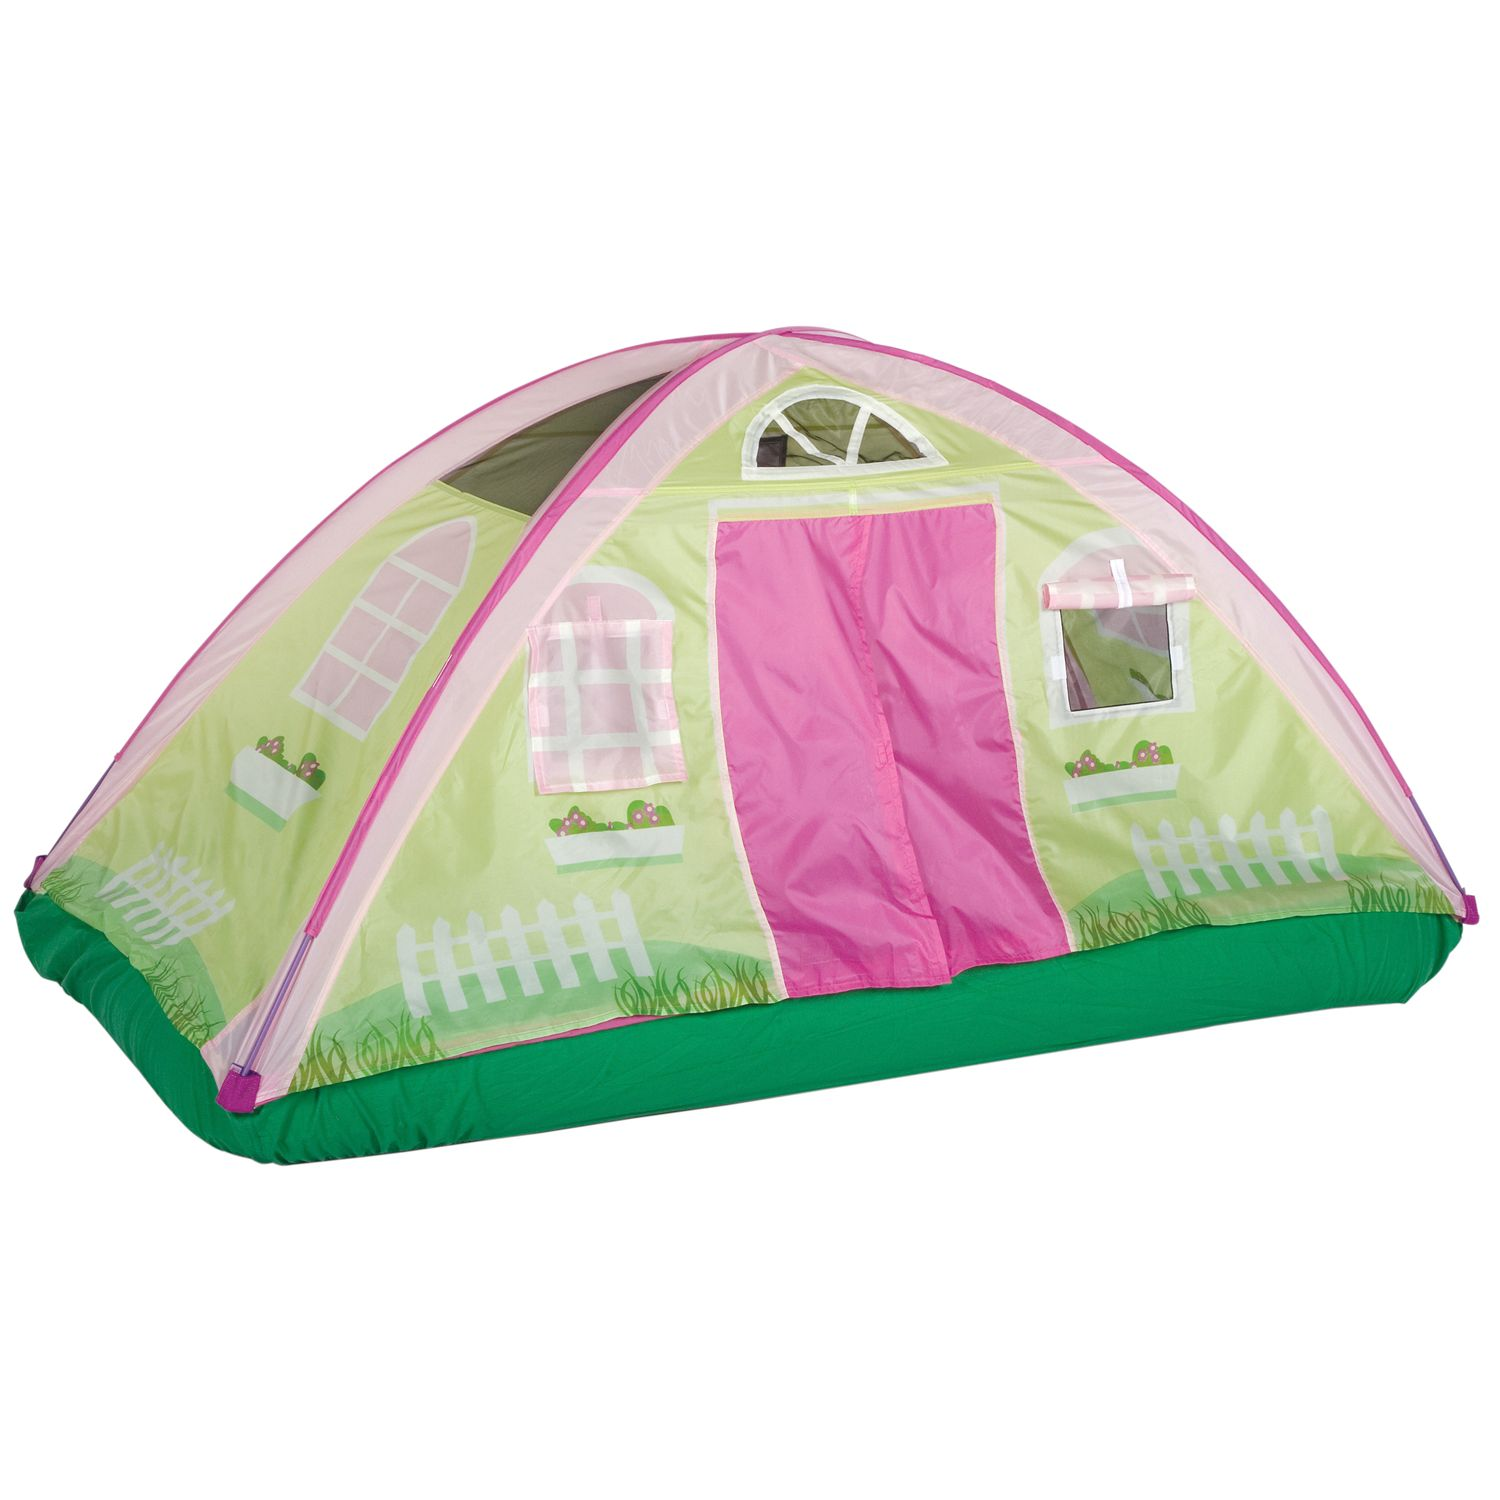 pacific play tents cottage bed tent rh kohls com cottage bed tent twin pacific play tents cottage bed tent